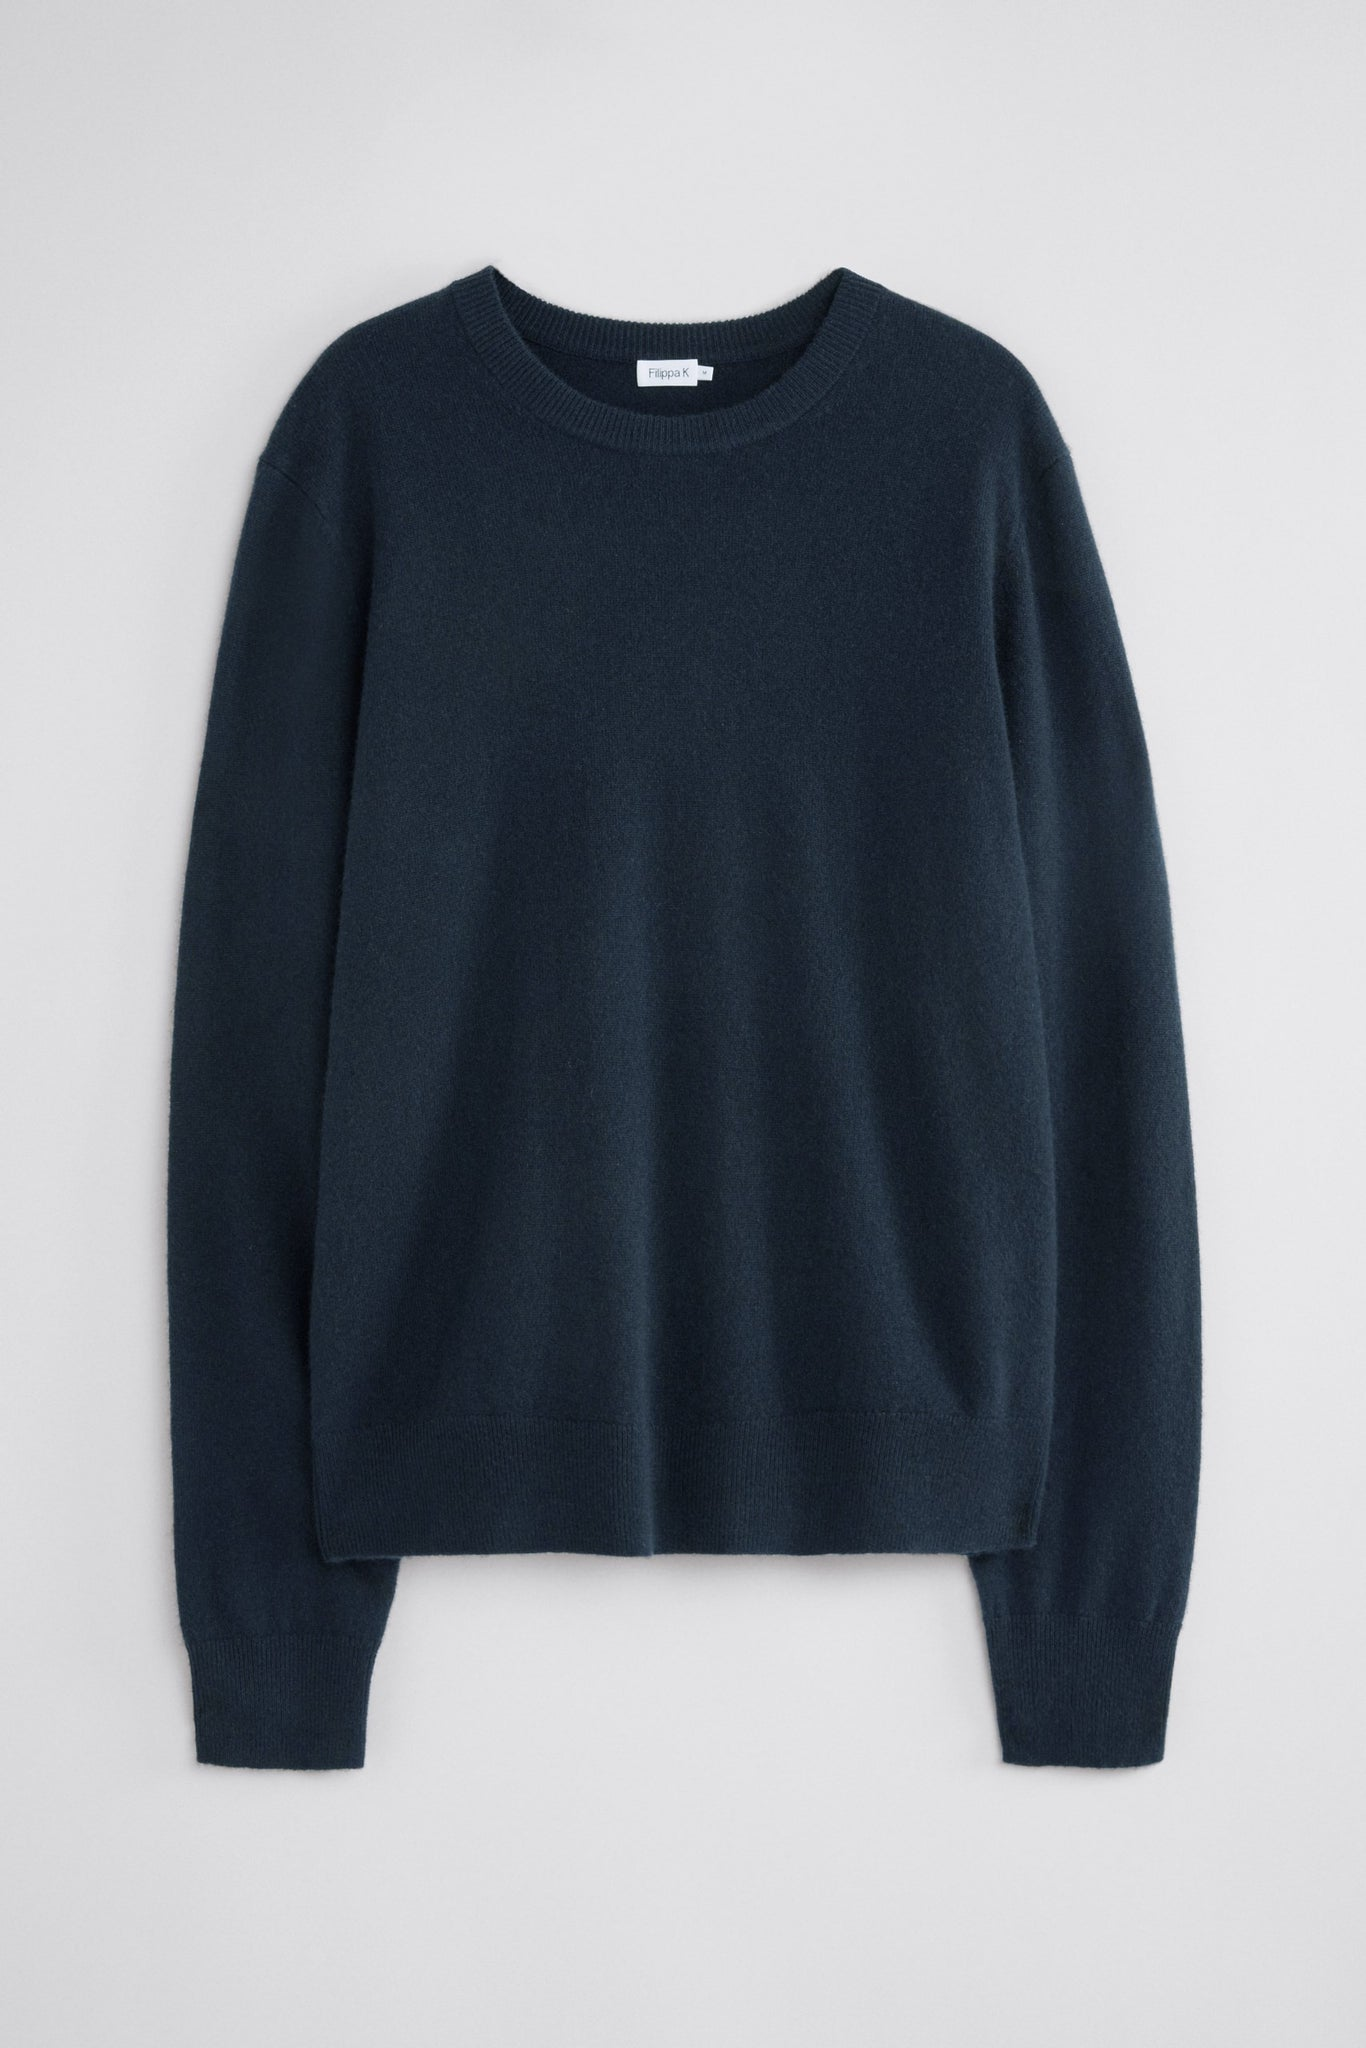 FILIPPA K UNISEX CASHMERE SWEATER IN NAVY